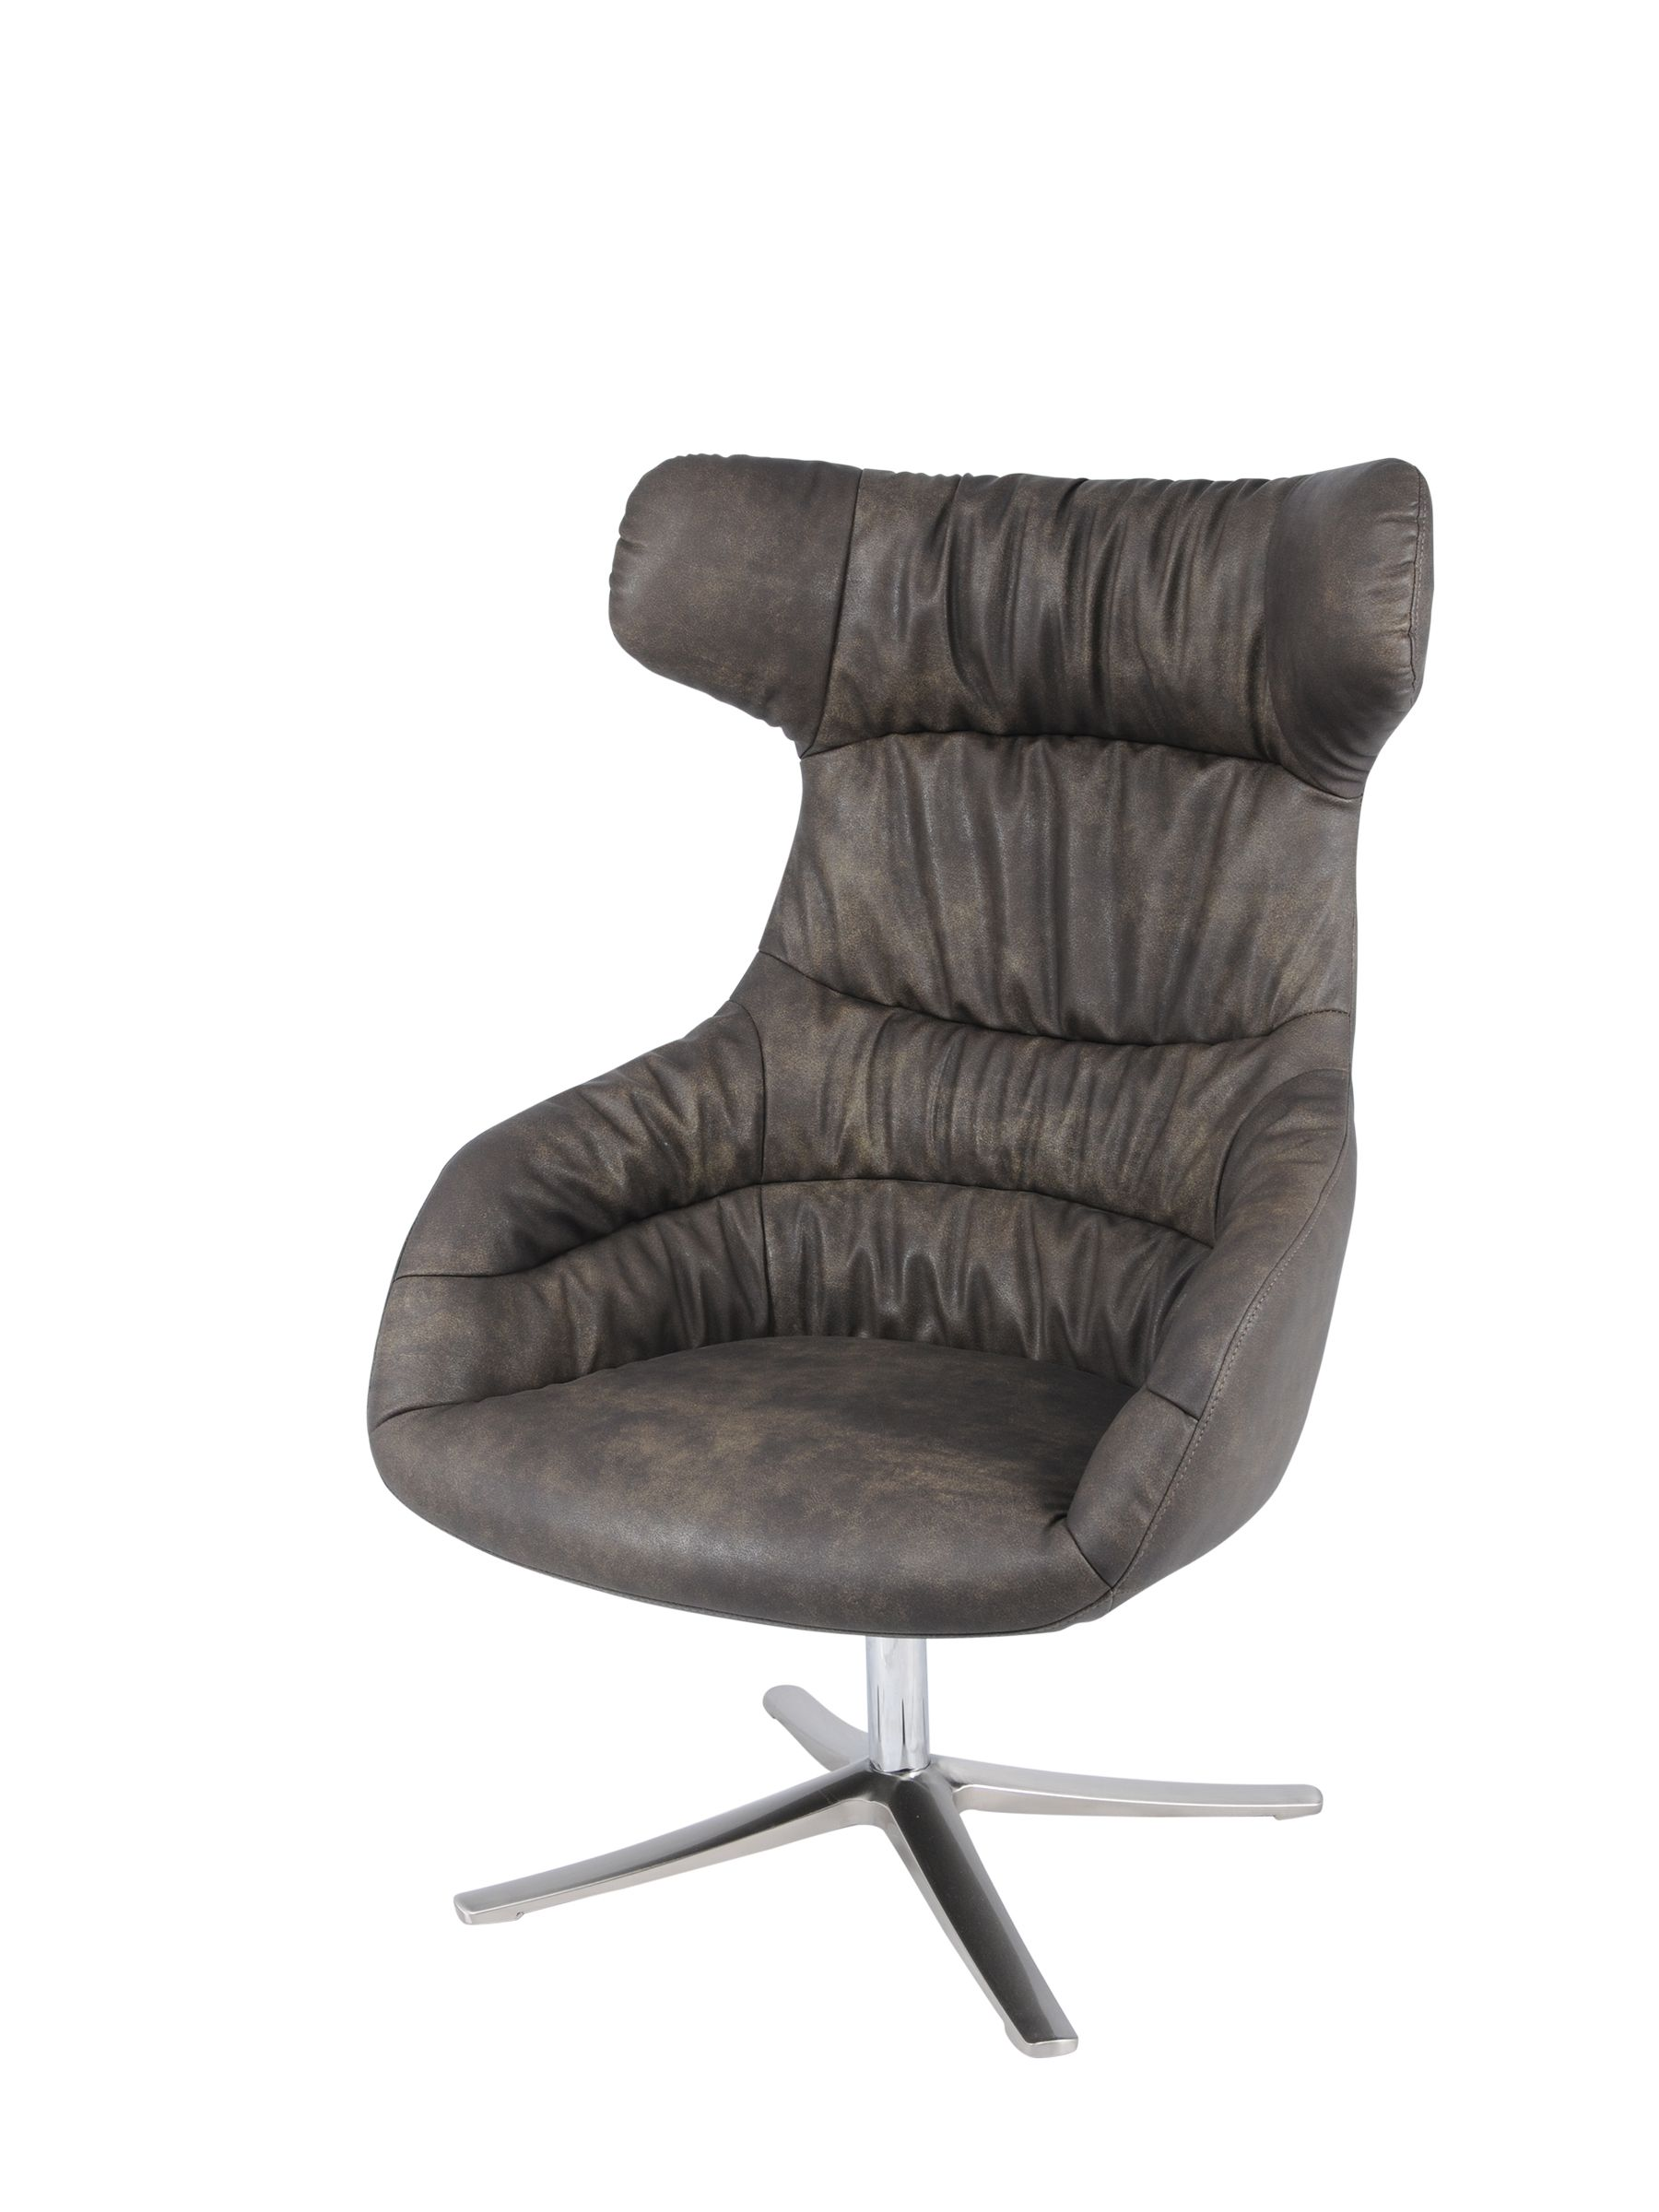 Skye PU Swivel Chair Chrome Legs in Antique Coffee